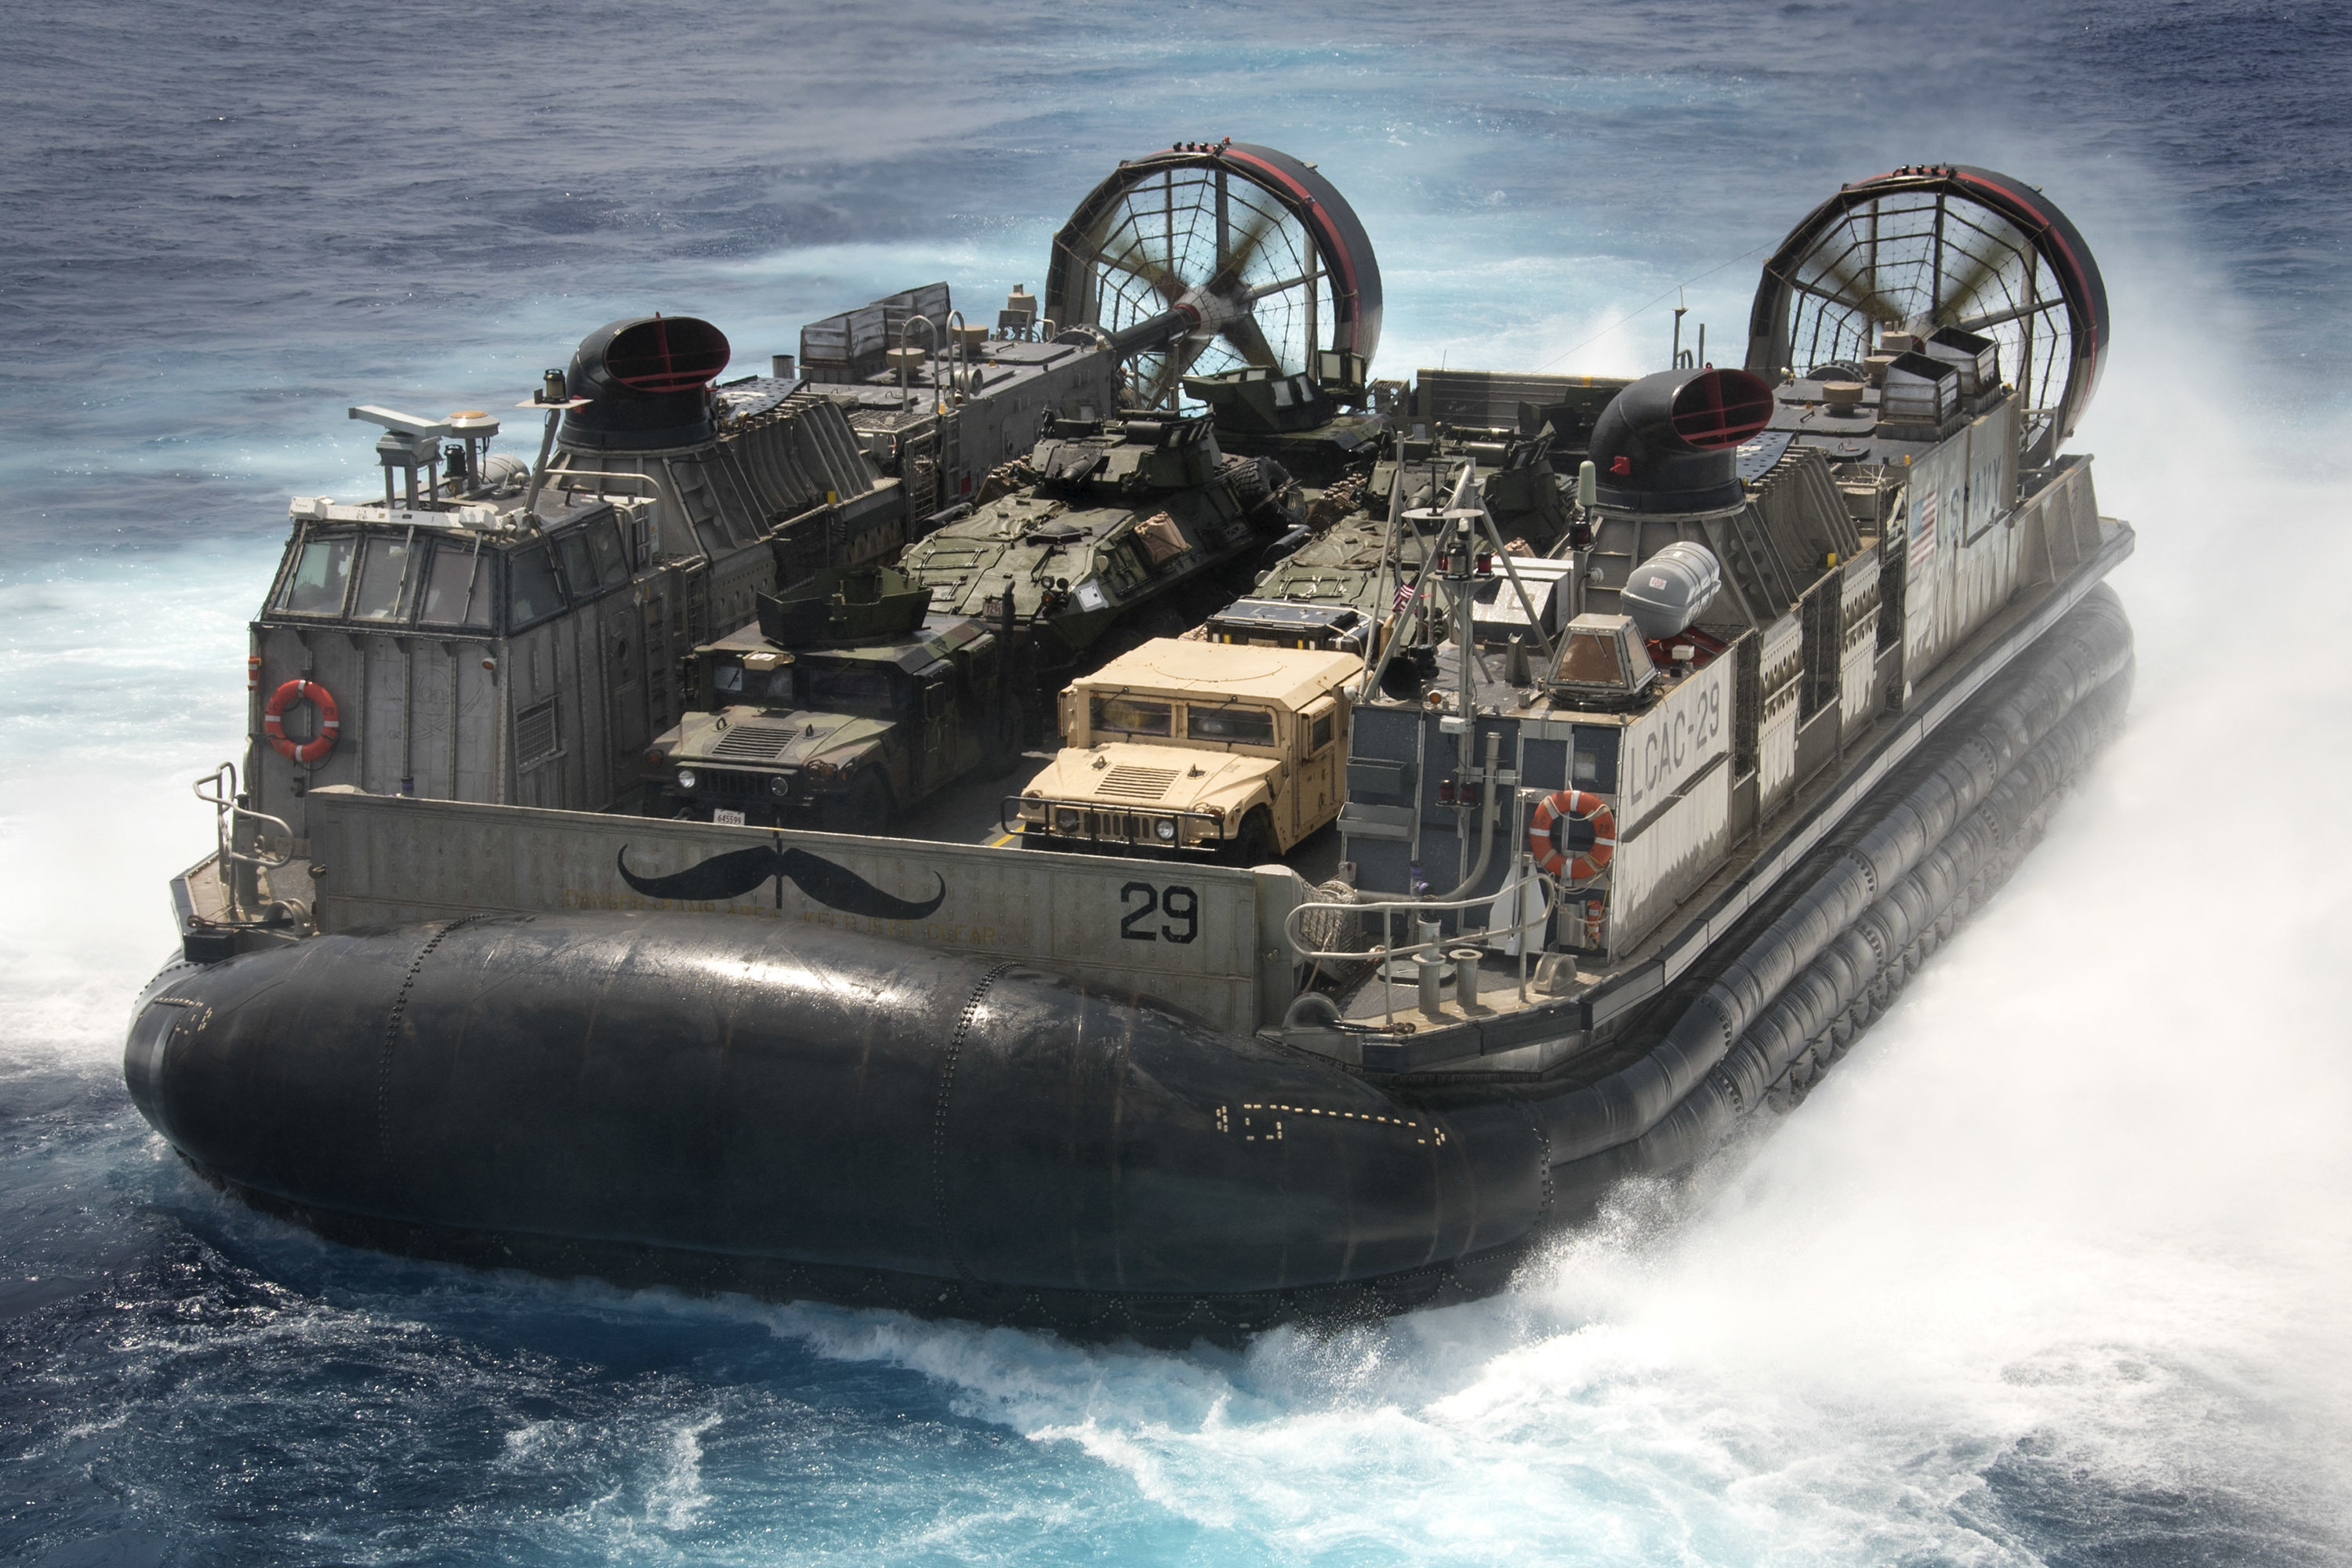 Landing craft air cushion (LCAC) 29, assigned to Naval Beach Unit (NBU) 7, disembarks from amphibious assault ship USS Bonhomme Richard (LHD 6) in the Philippine Sea on Sept. 11, 2016. US Navy photo.